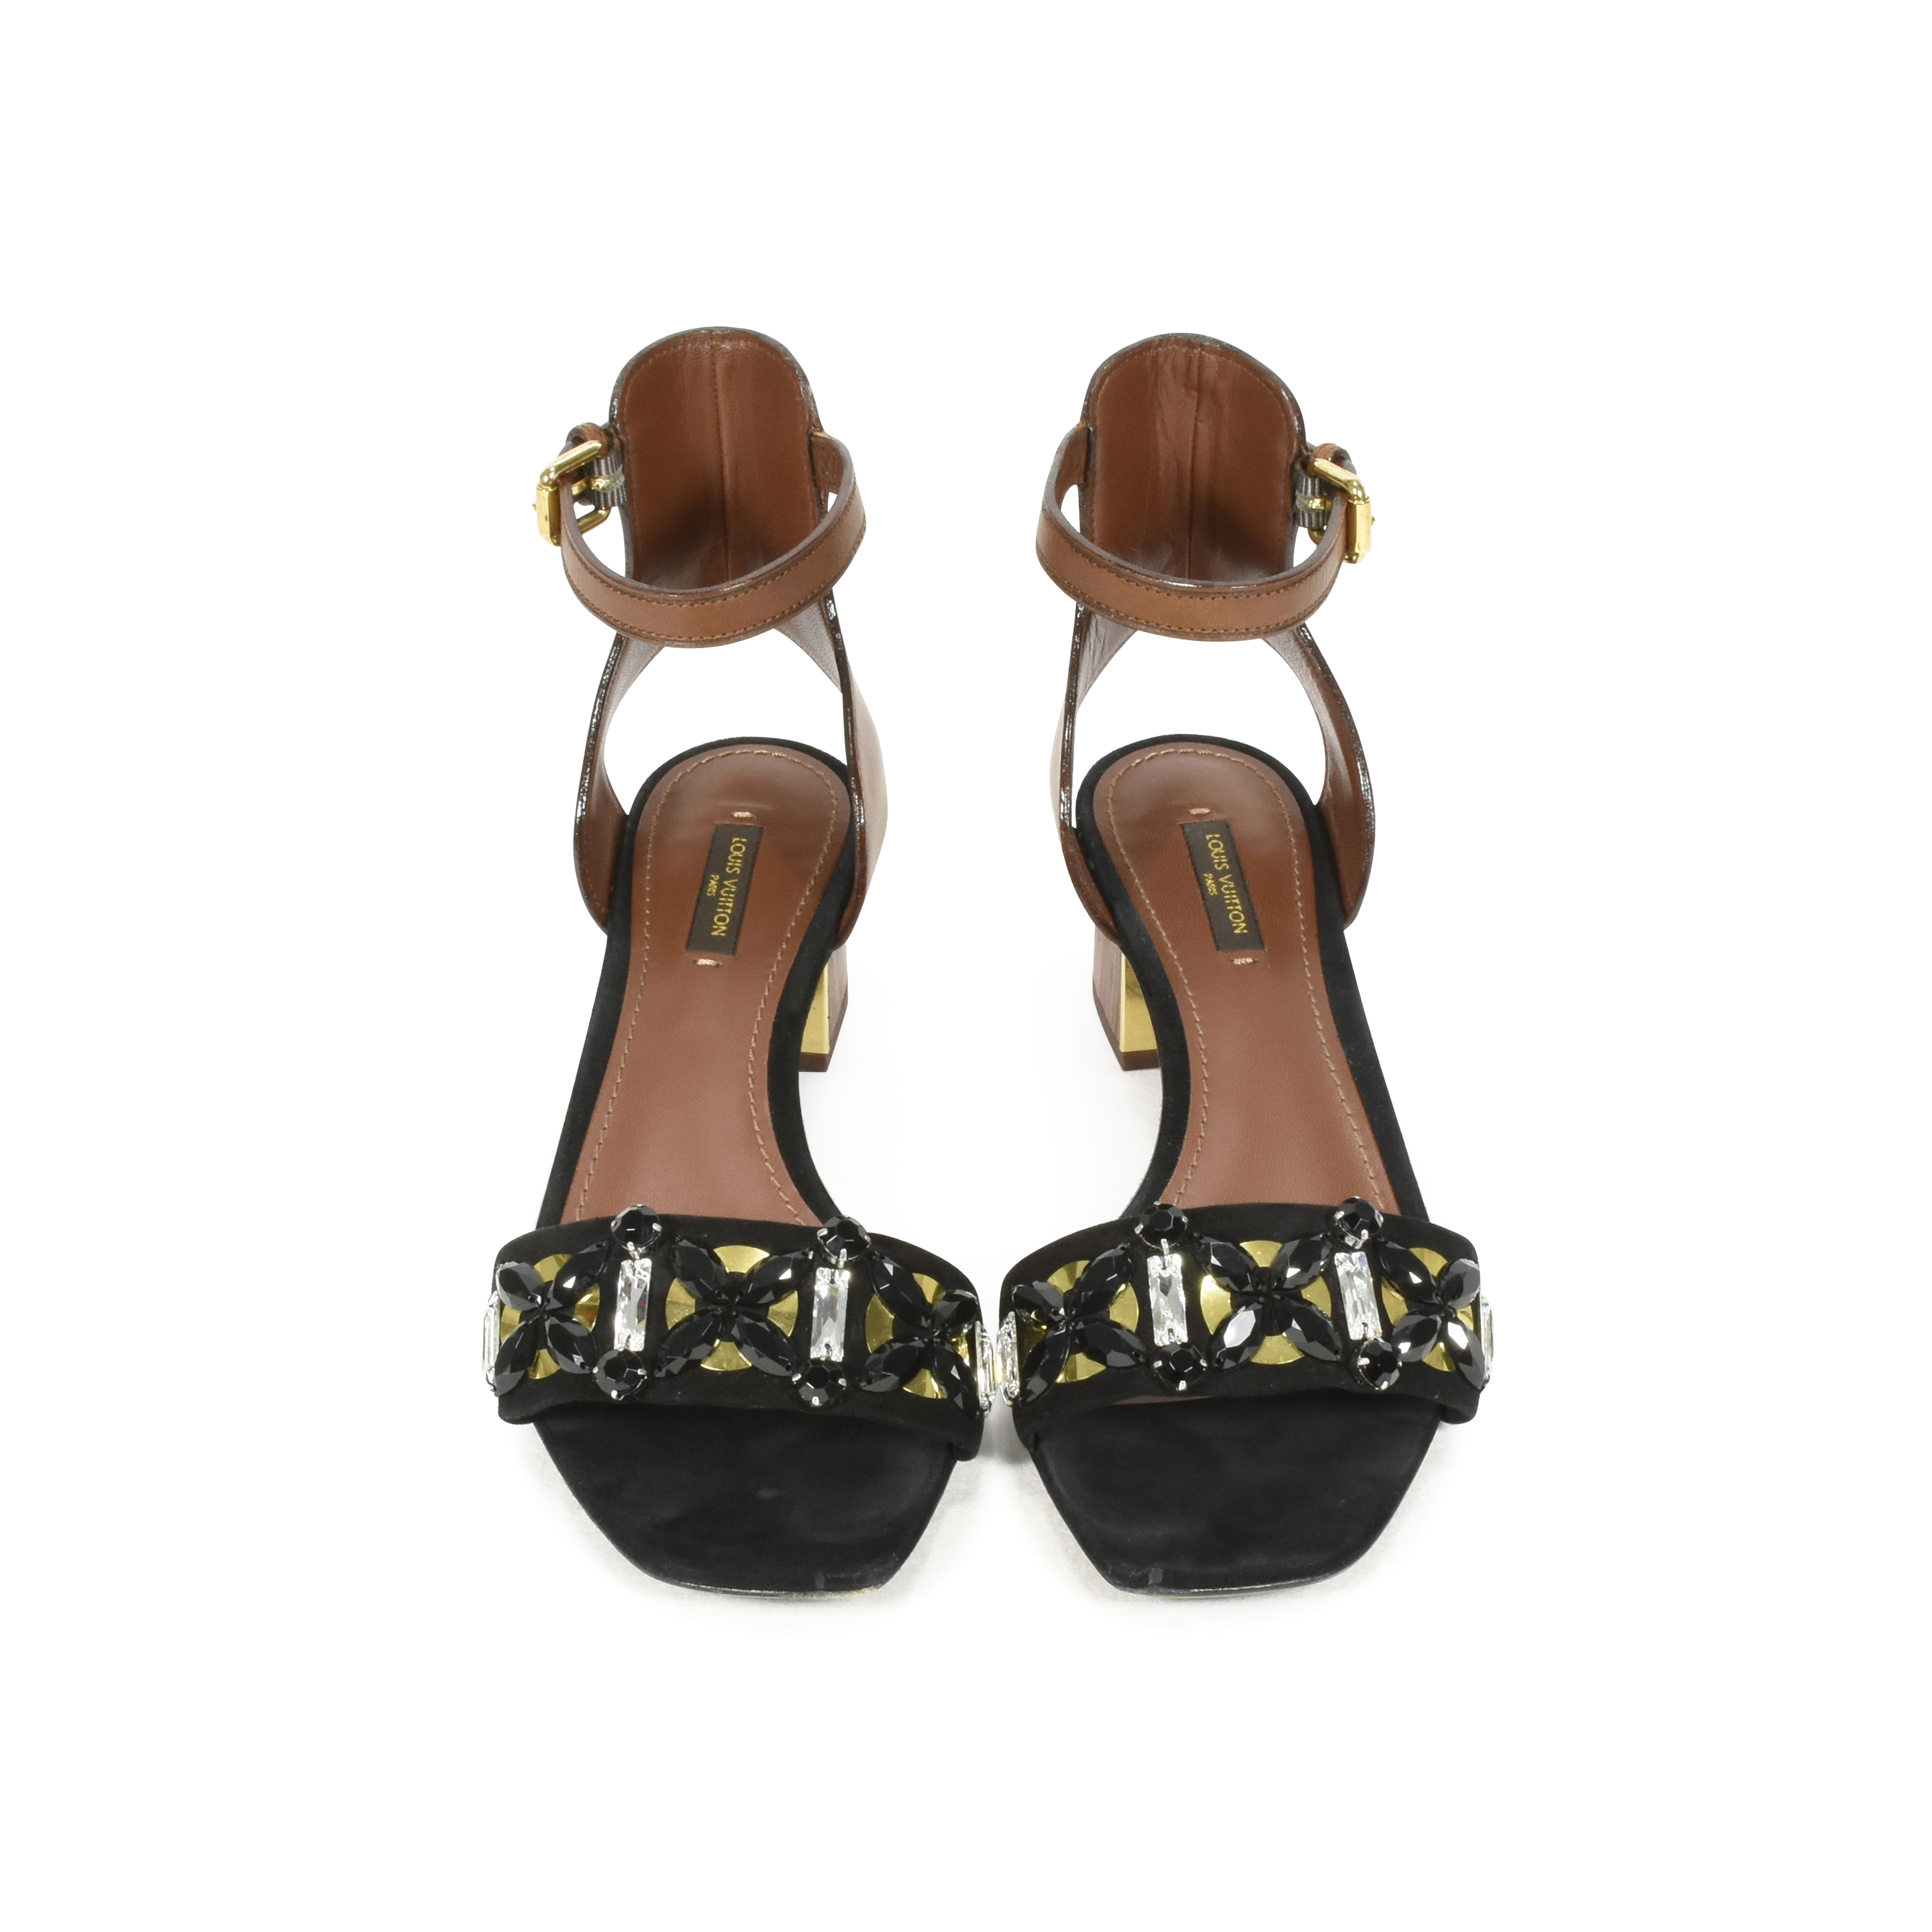 447ddbb76e65 Authentic Second Hand Louis Vuitton Embellished Sandals (PSS-457-00001)